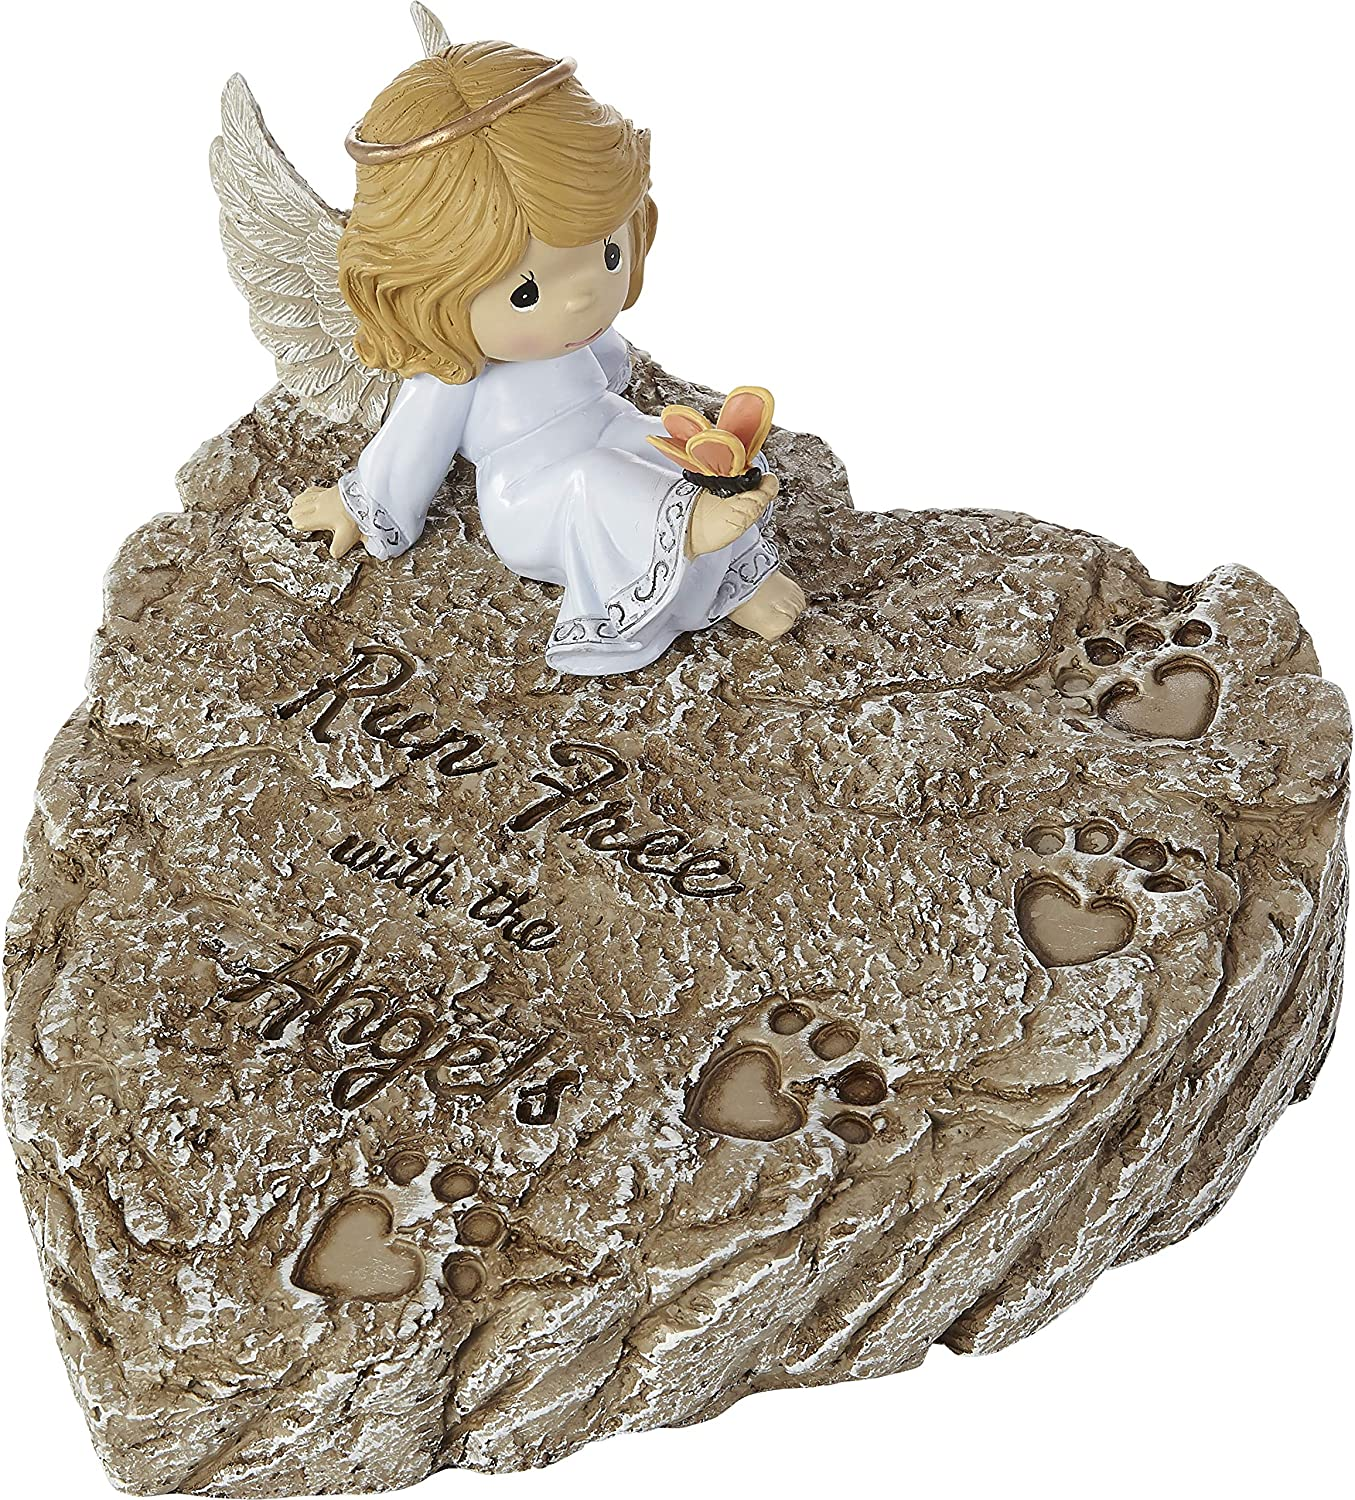 Precious Moments 202425 Run Free with The Angels Resin Memorial Garden Stone, One Size, Multicolored